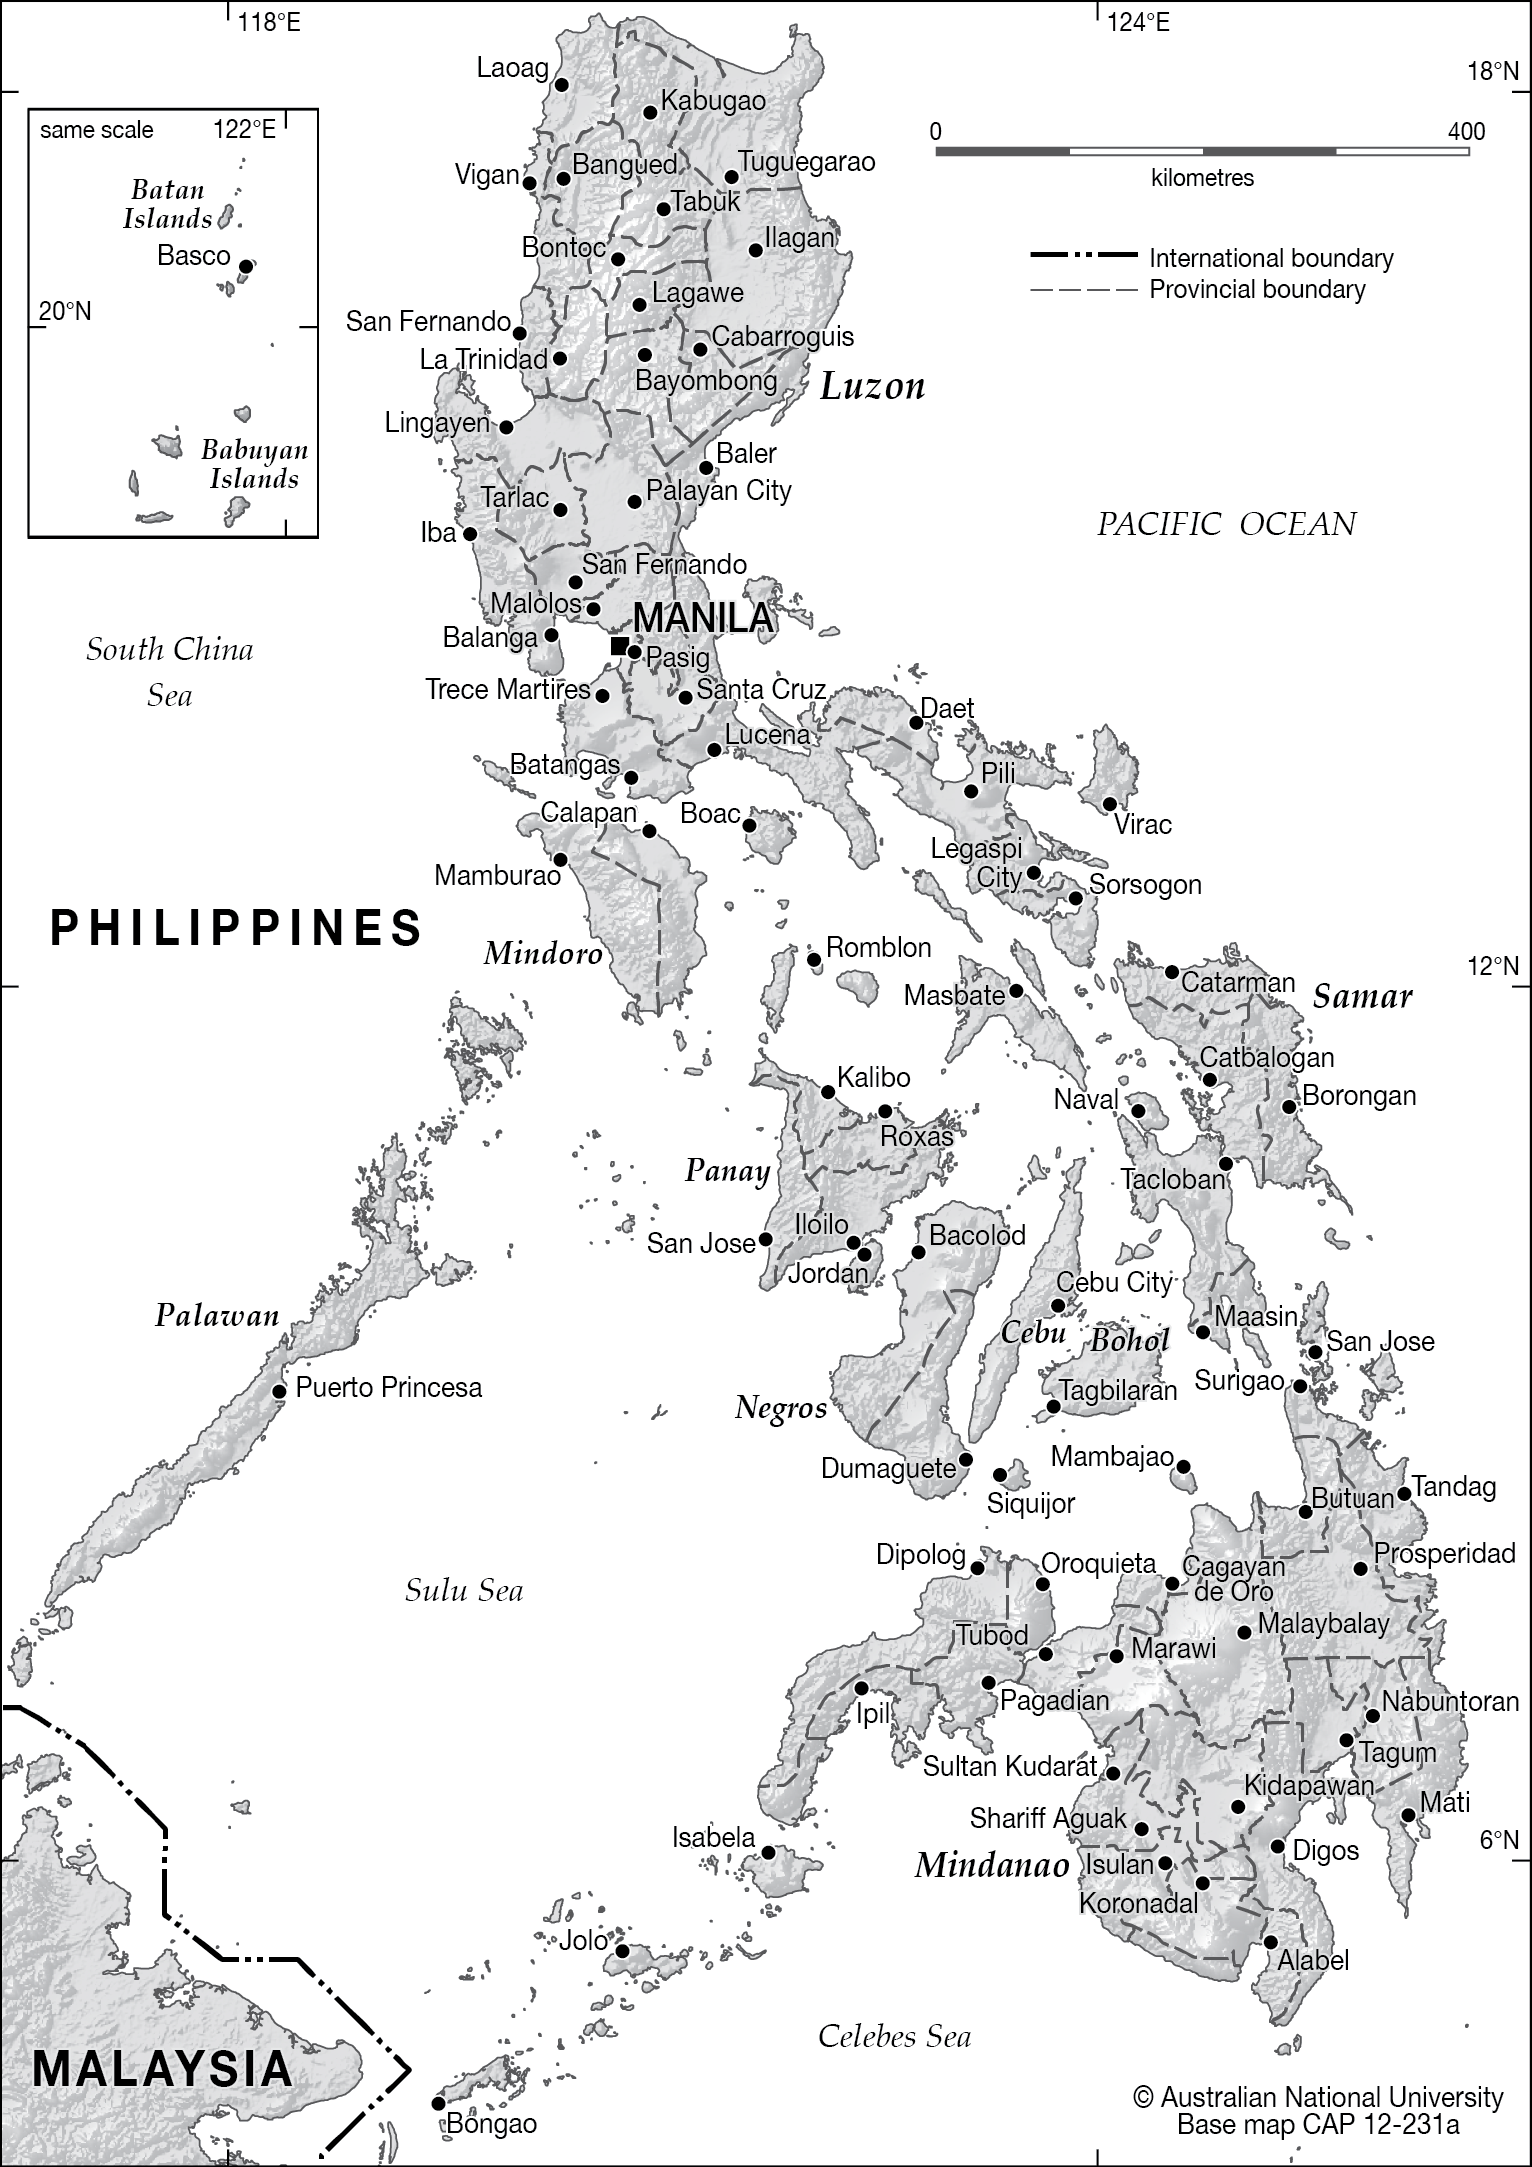 Philippines Map Black And White.Philippines Administration Base Cartogis Services Maps Online Anu